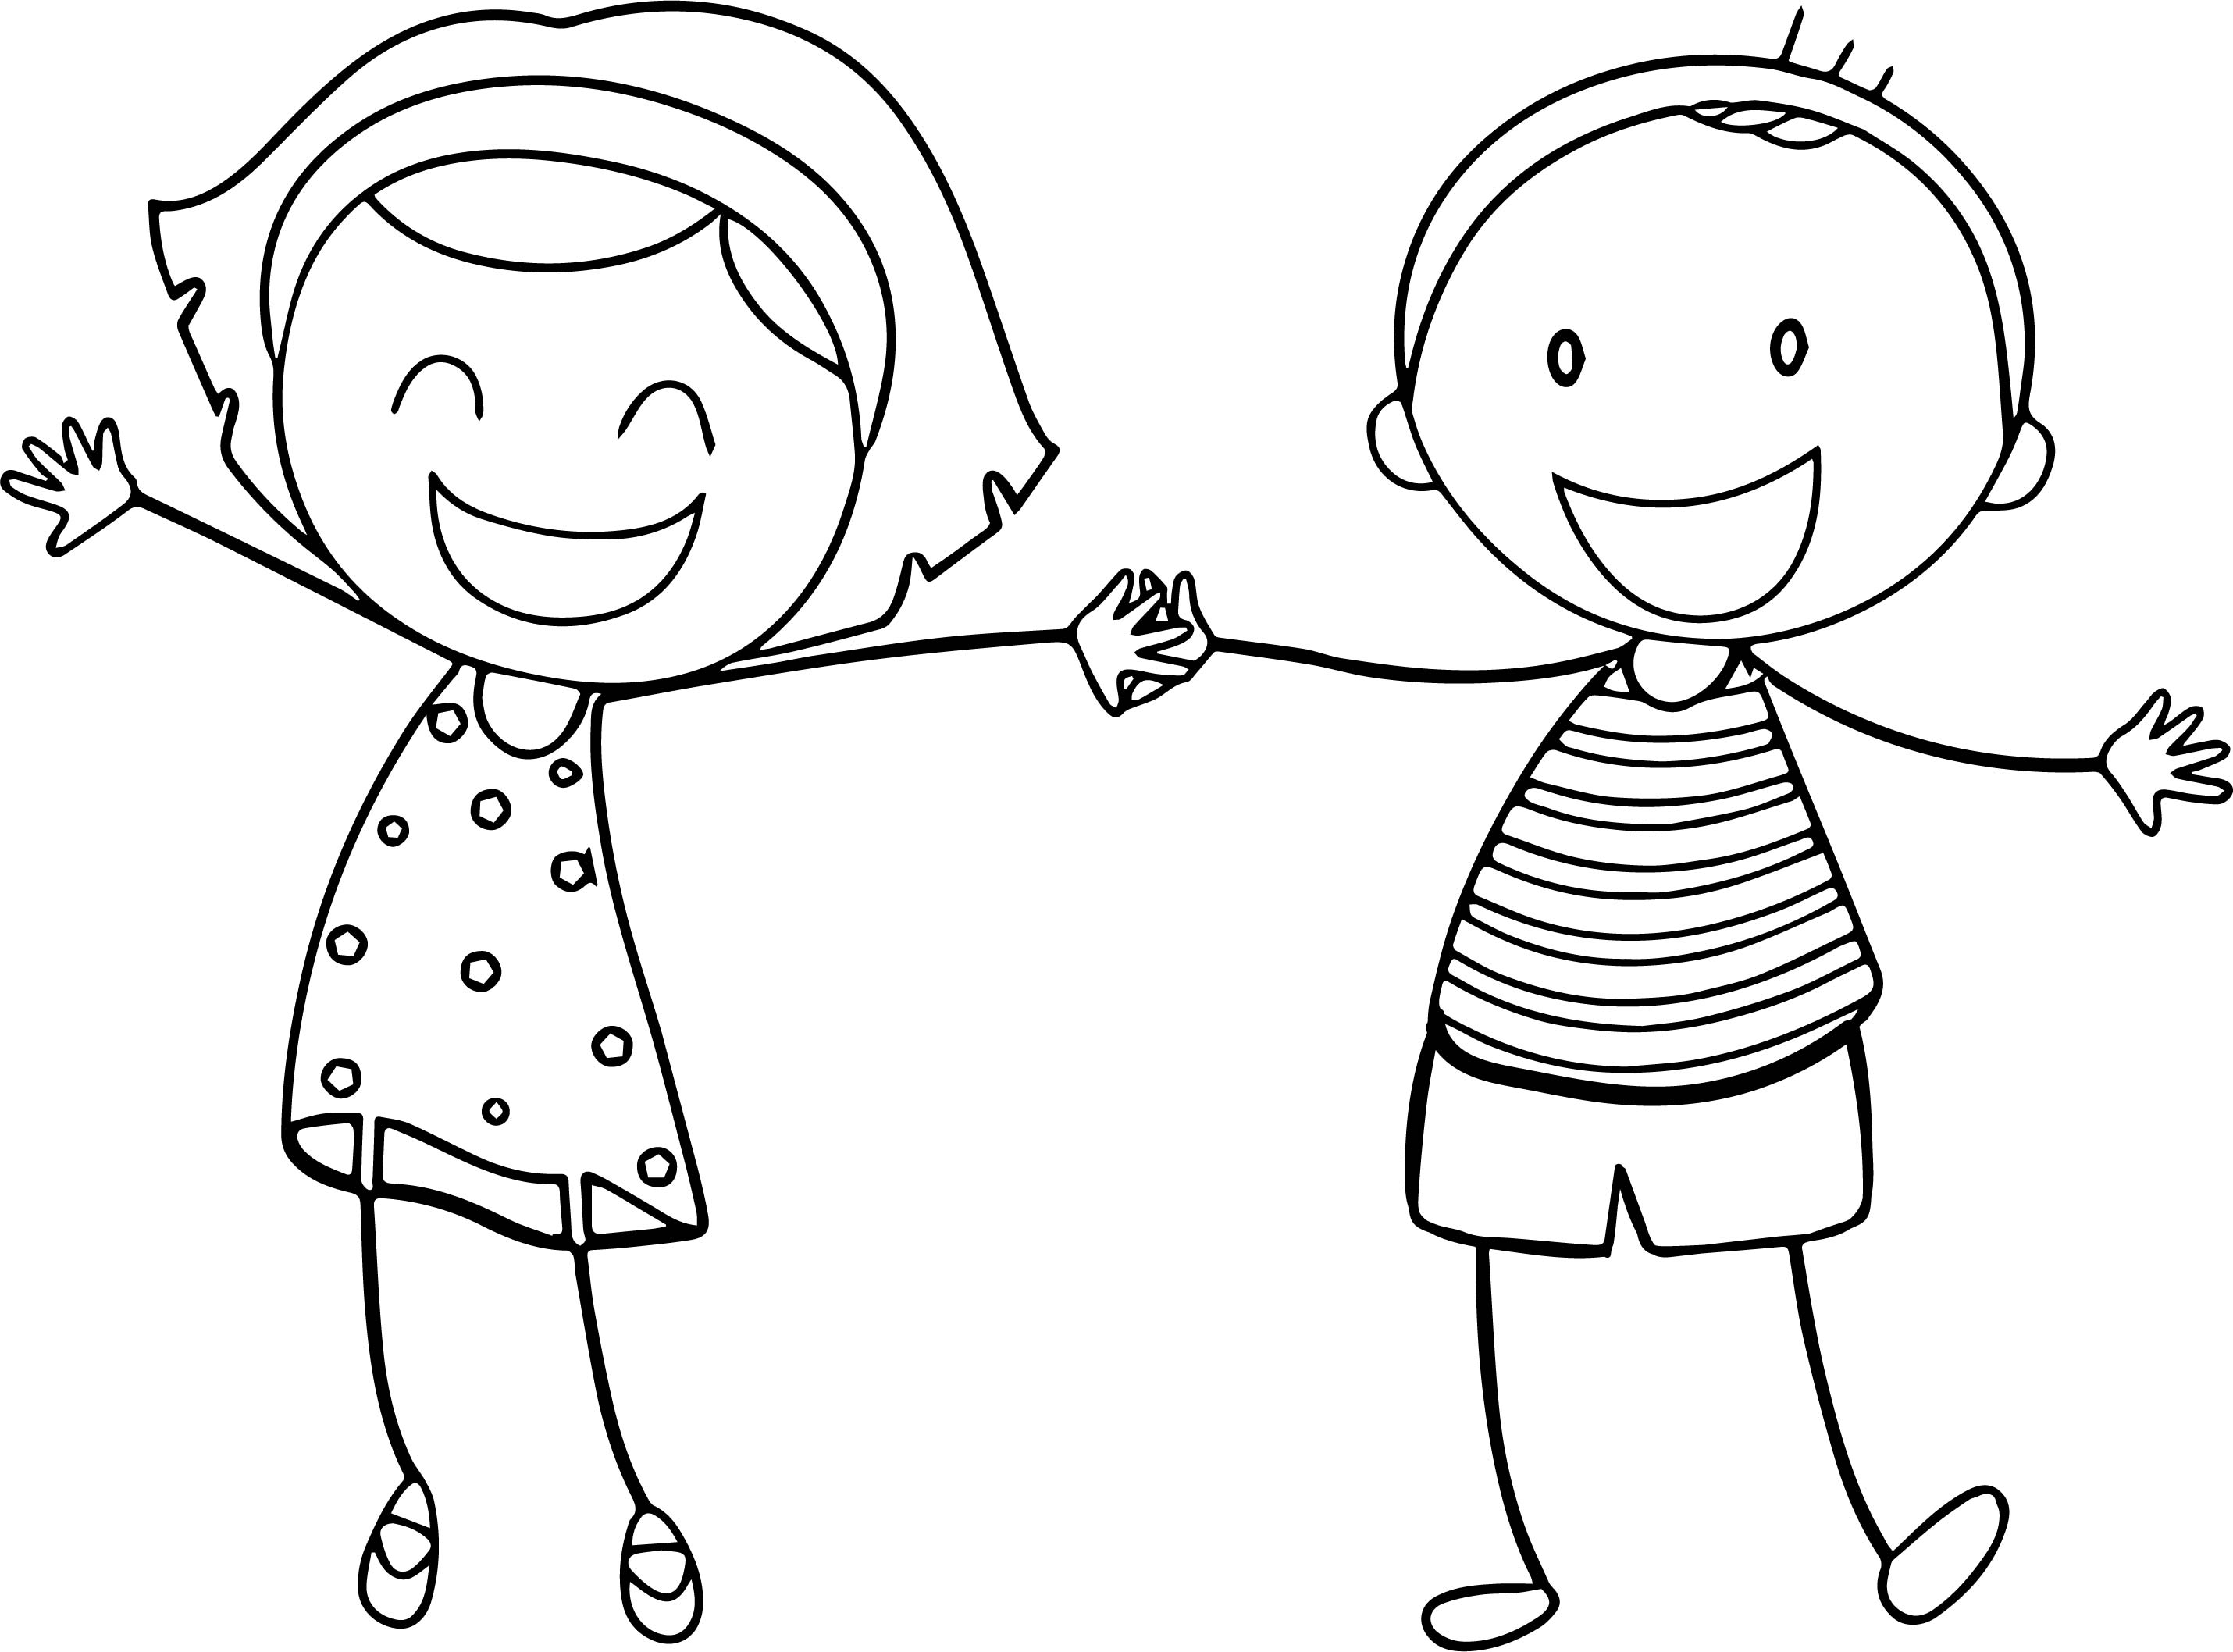 Boy And Girl Drawing at GetDrawings.com   Free for personal use Boy ...